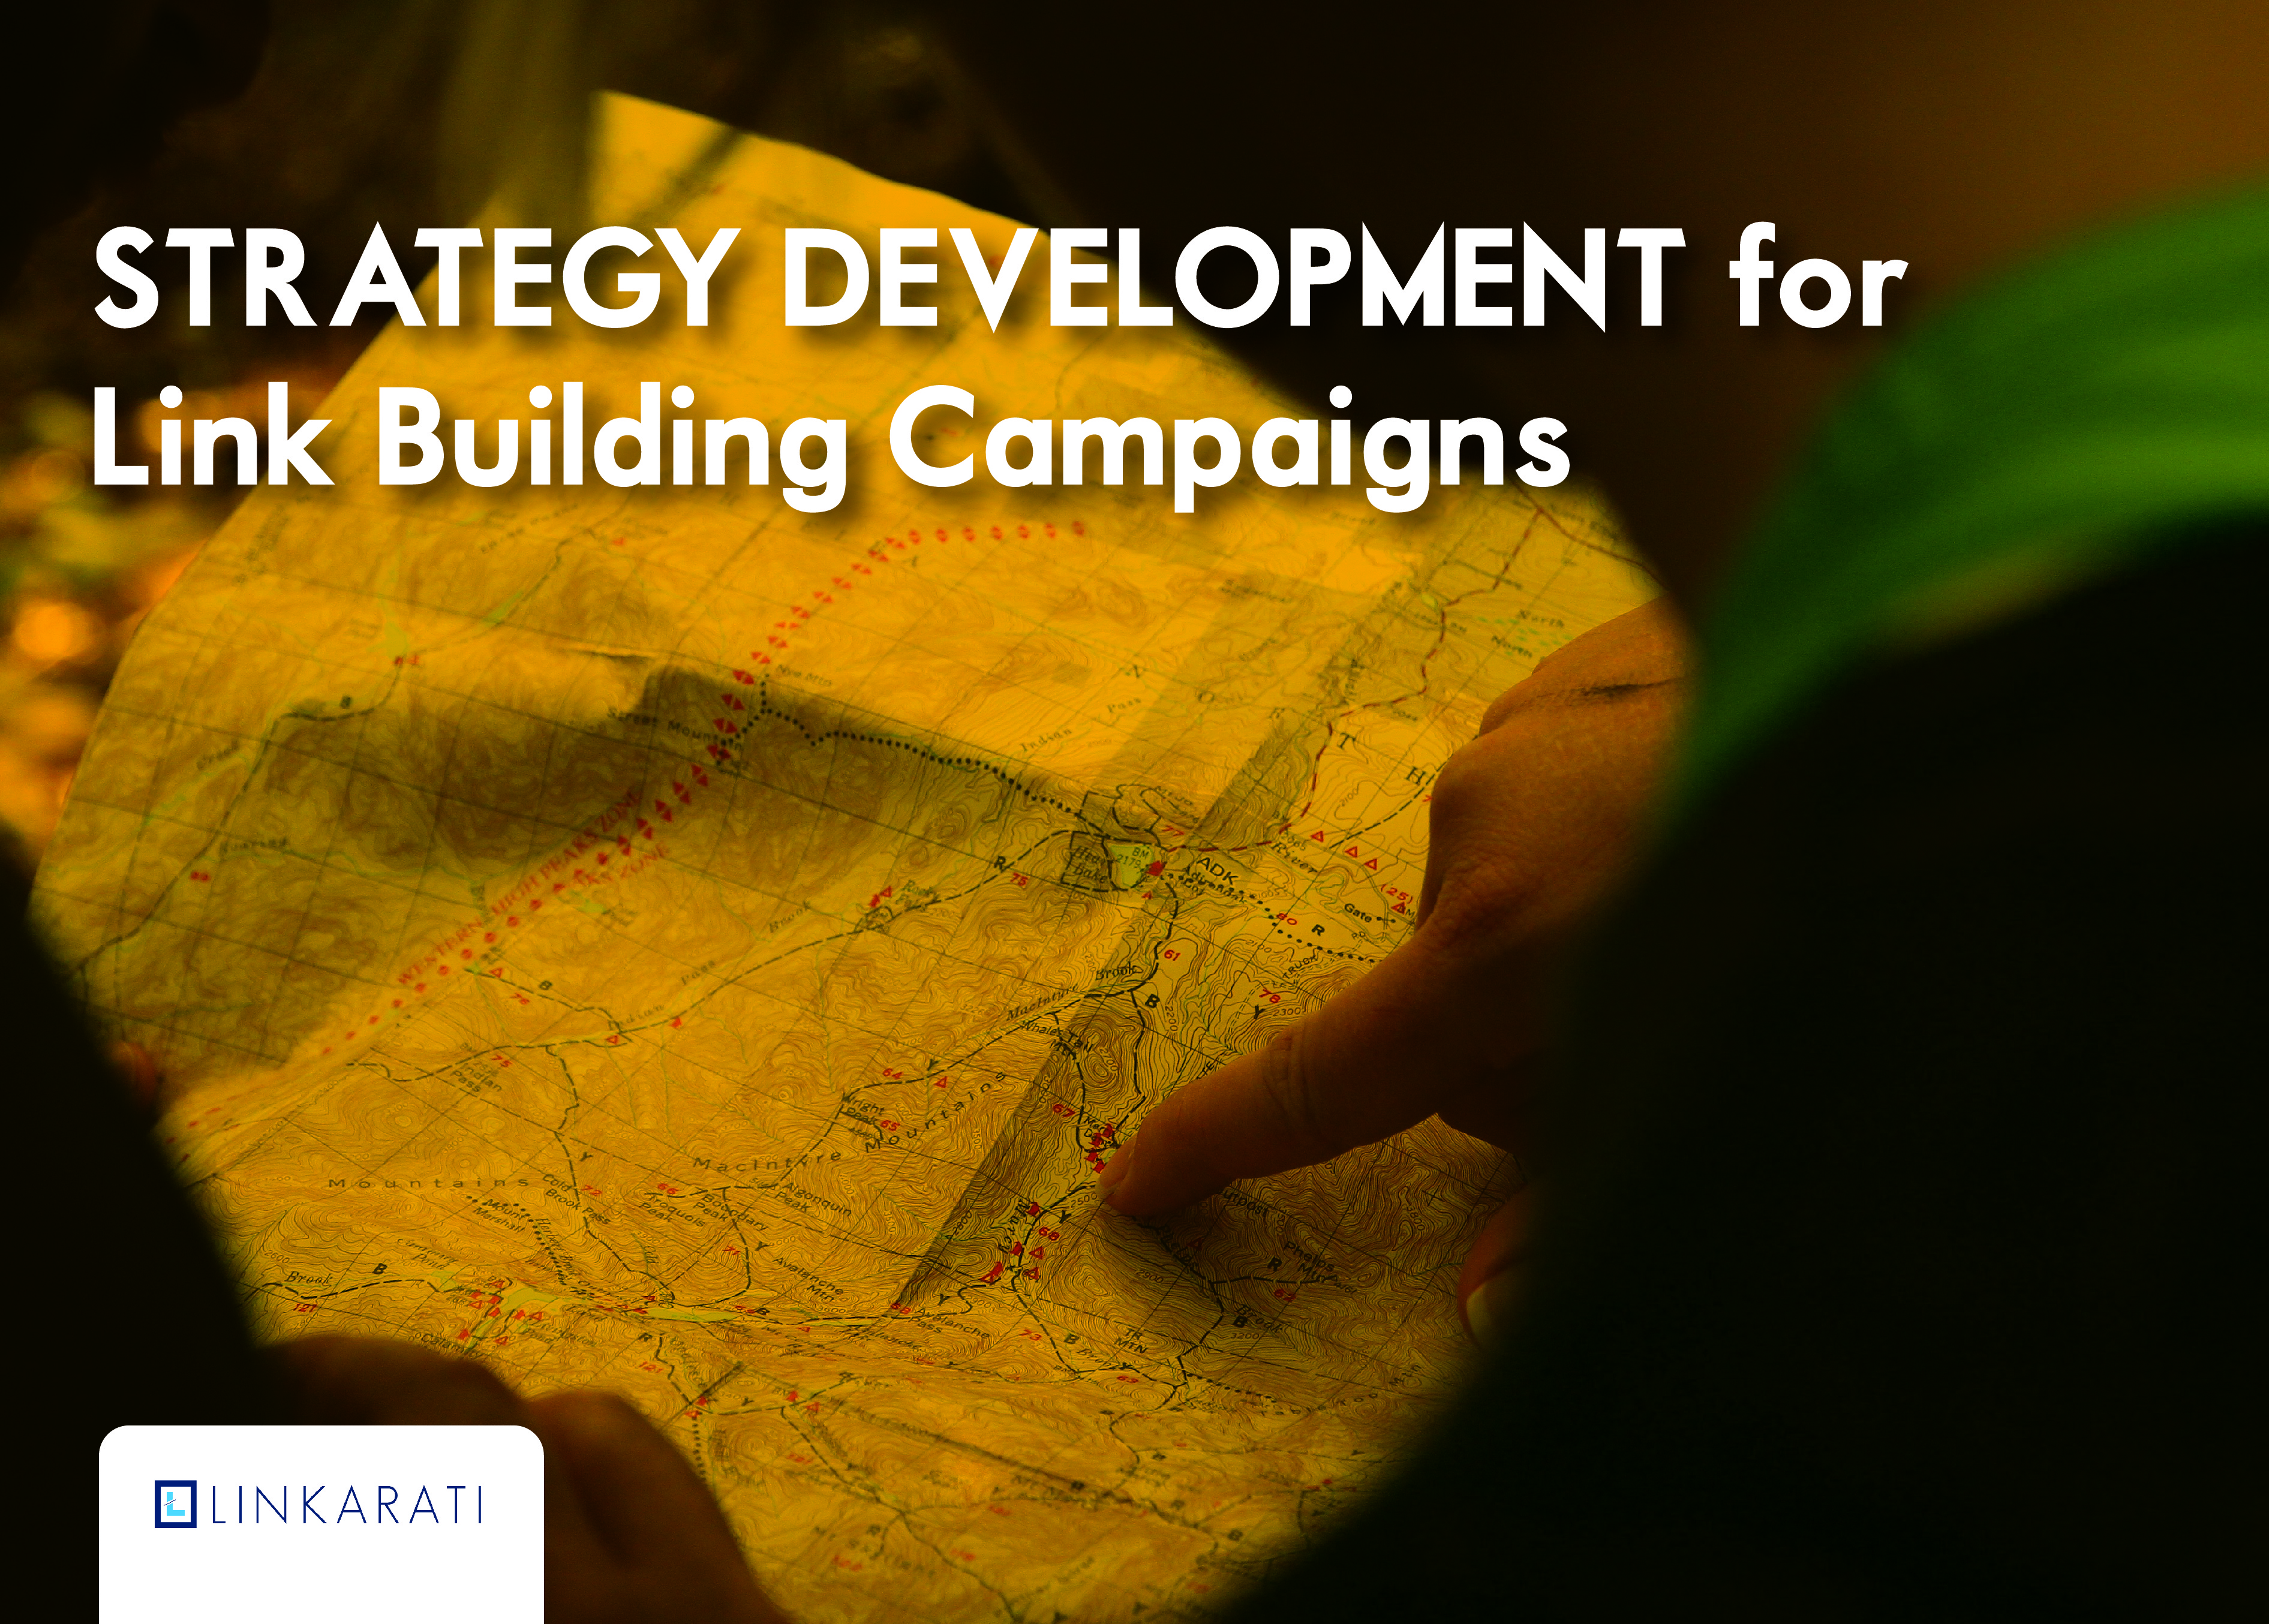 Strategy_Development_for_Link_Building_Campaigns.jpg